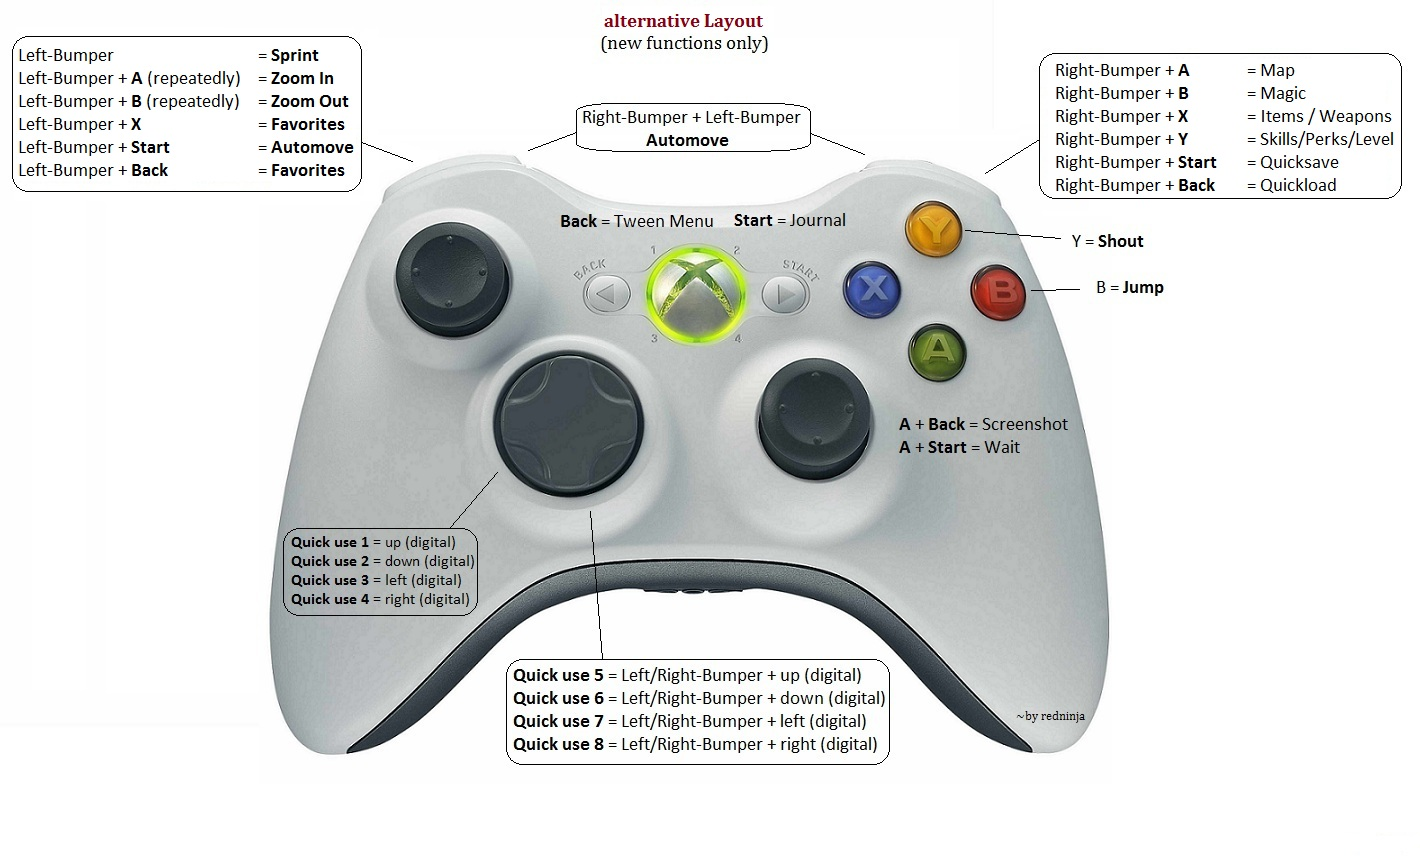 logitech playstation 2 wireless controller manual